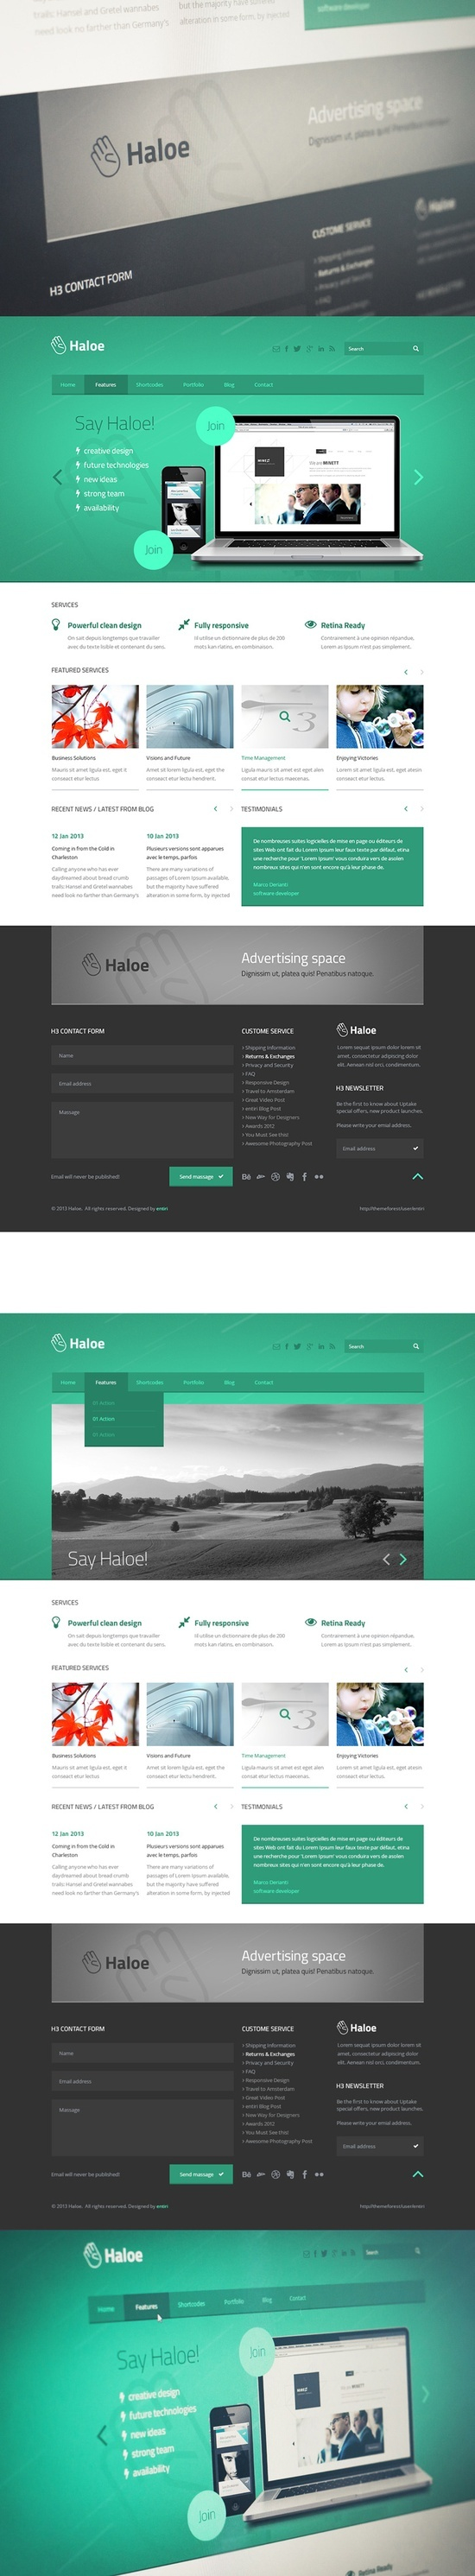 51 best WEBDESIGN. images on Pinterest | Website designs, Design web ...